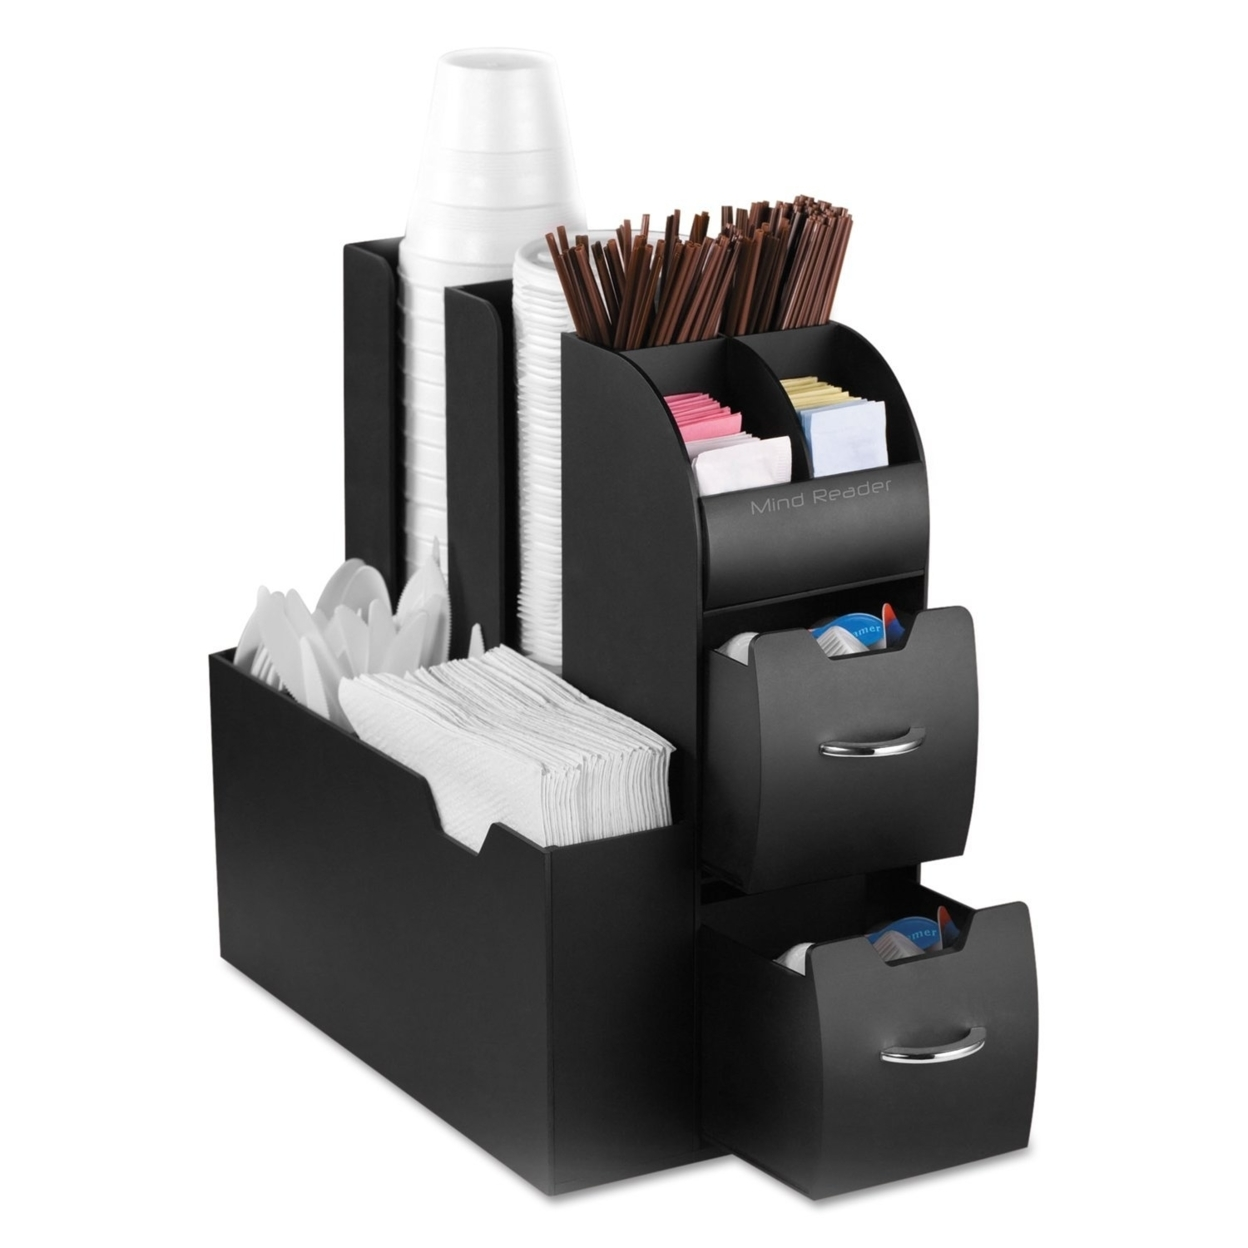 "Organizer"" Coffee Condiment and Accessories Caddy, Black Coffee Oranizer 56f16be56a3d6fda718b45d0"